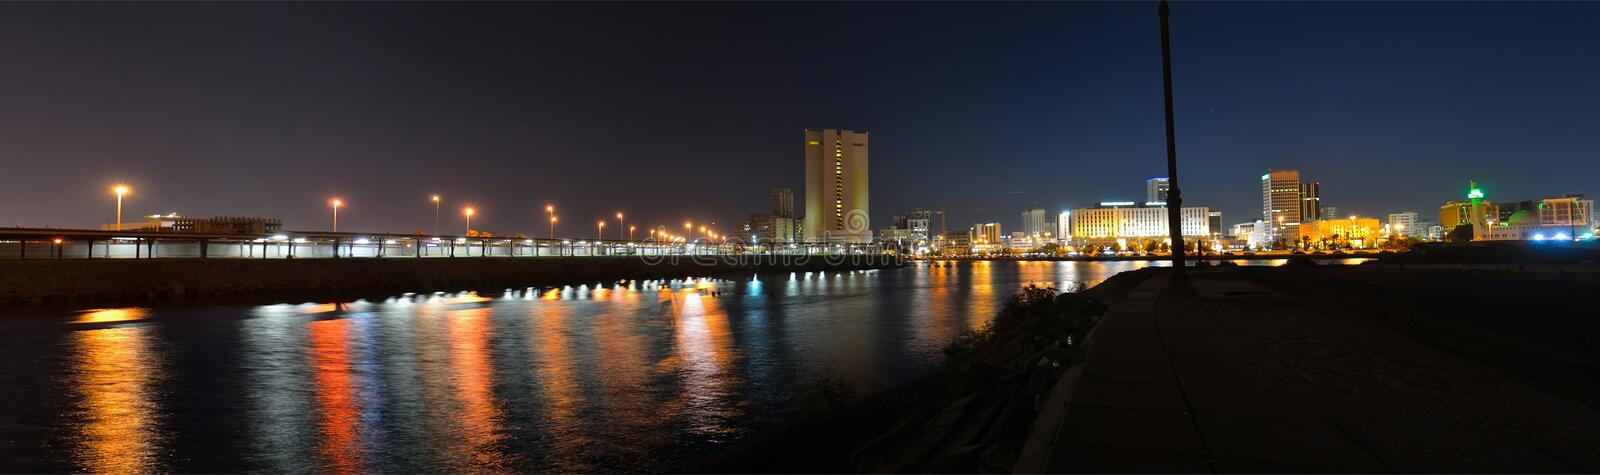 COMMERCIAL CENTER OF JEDDAH stock images